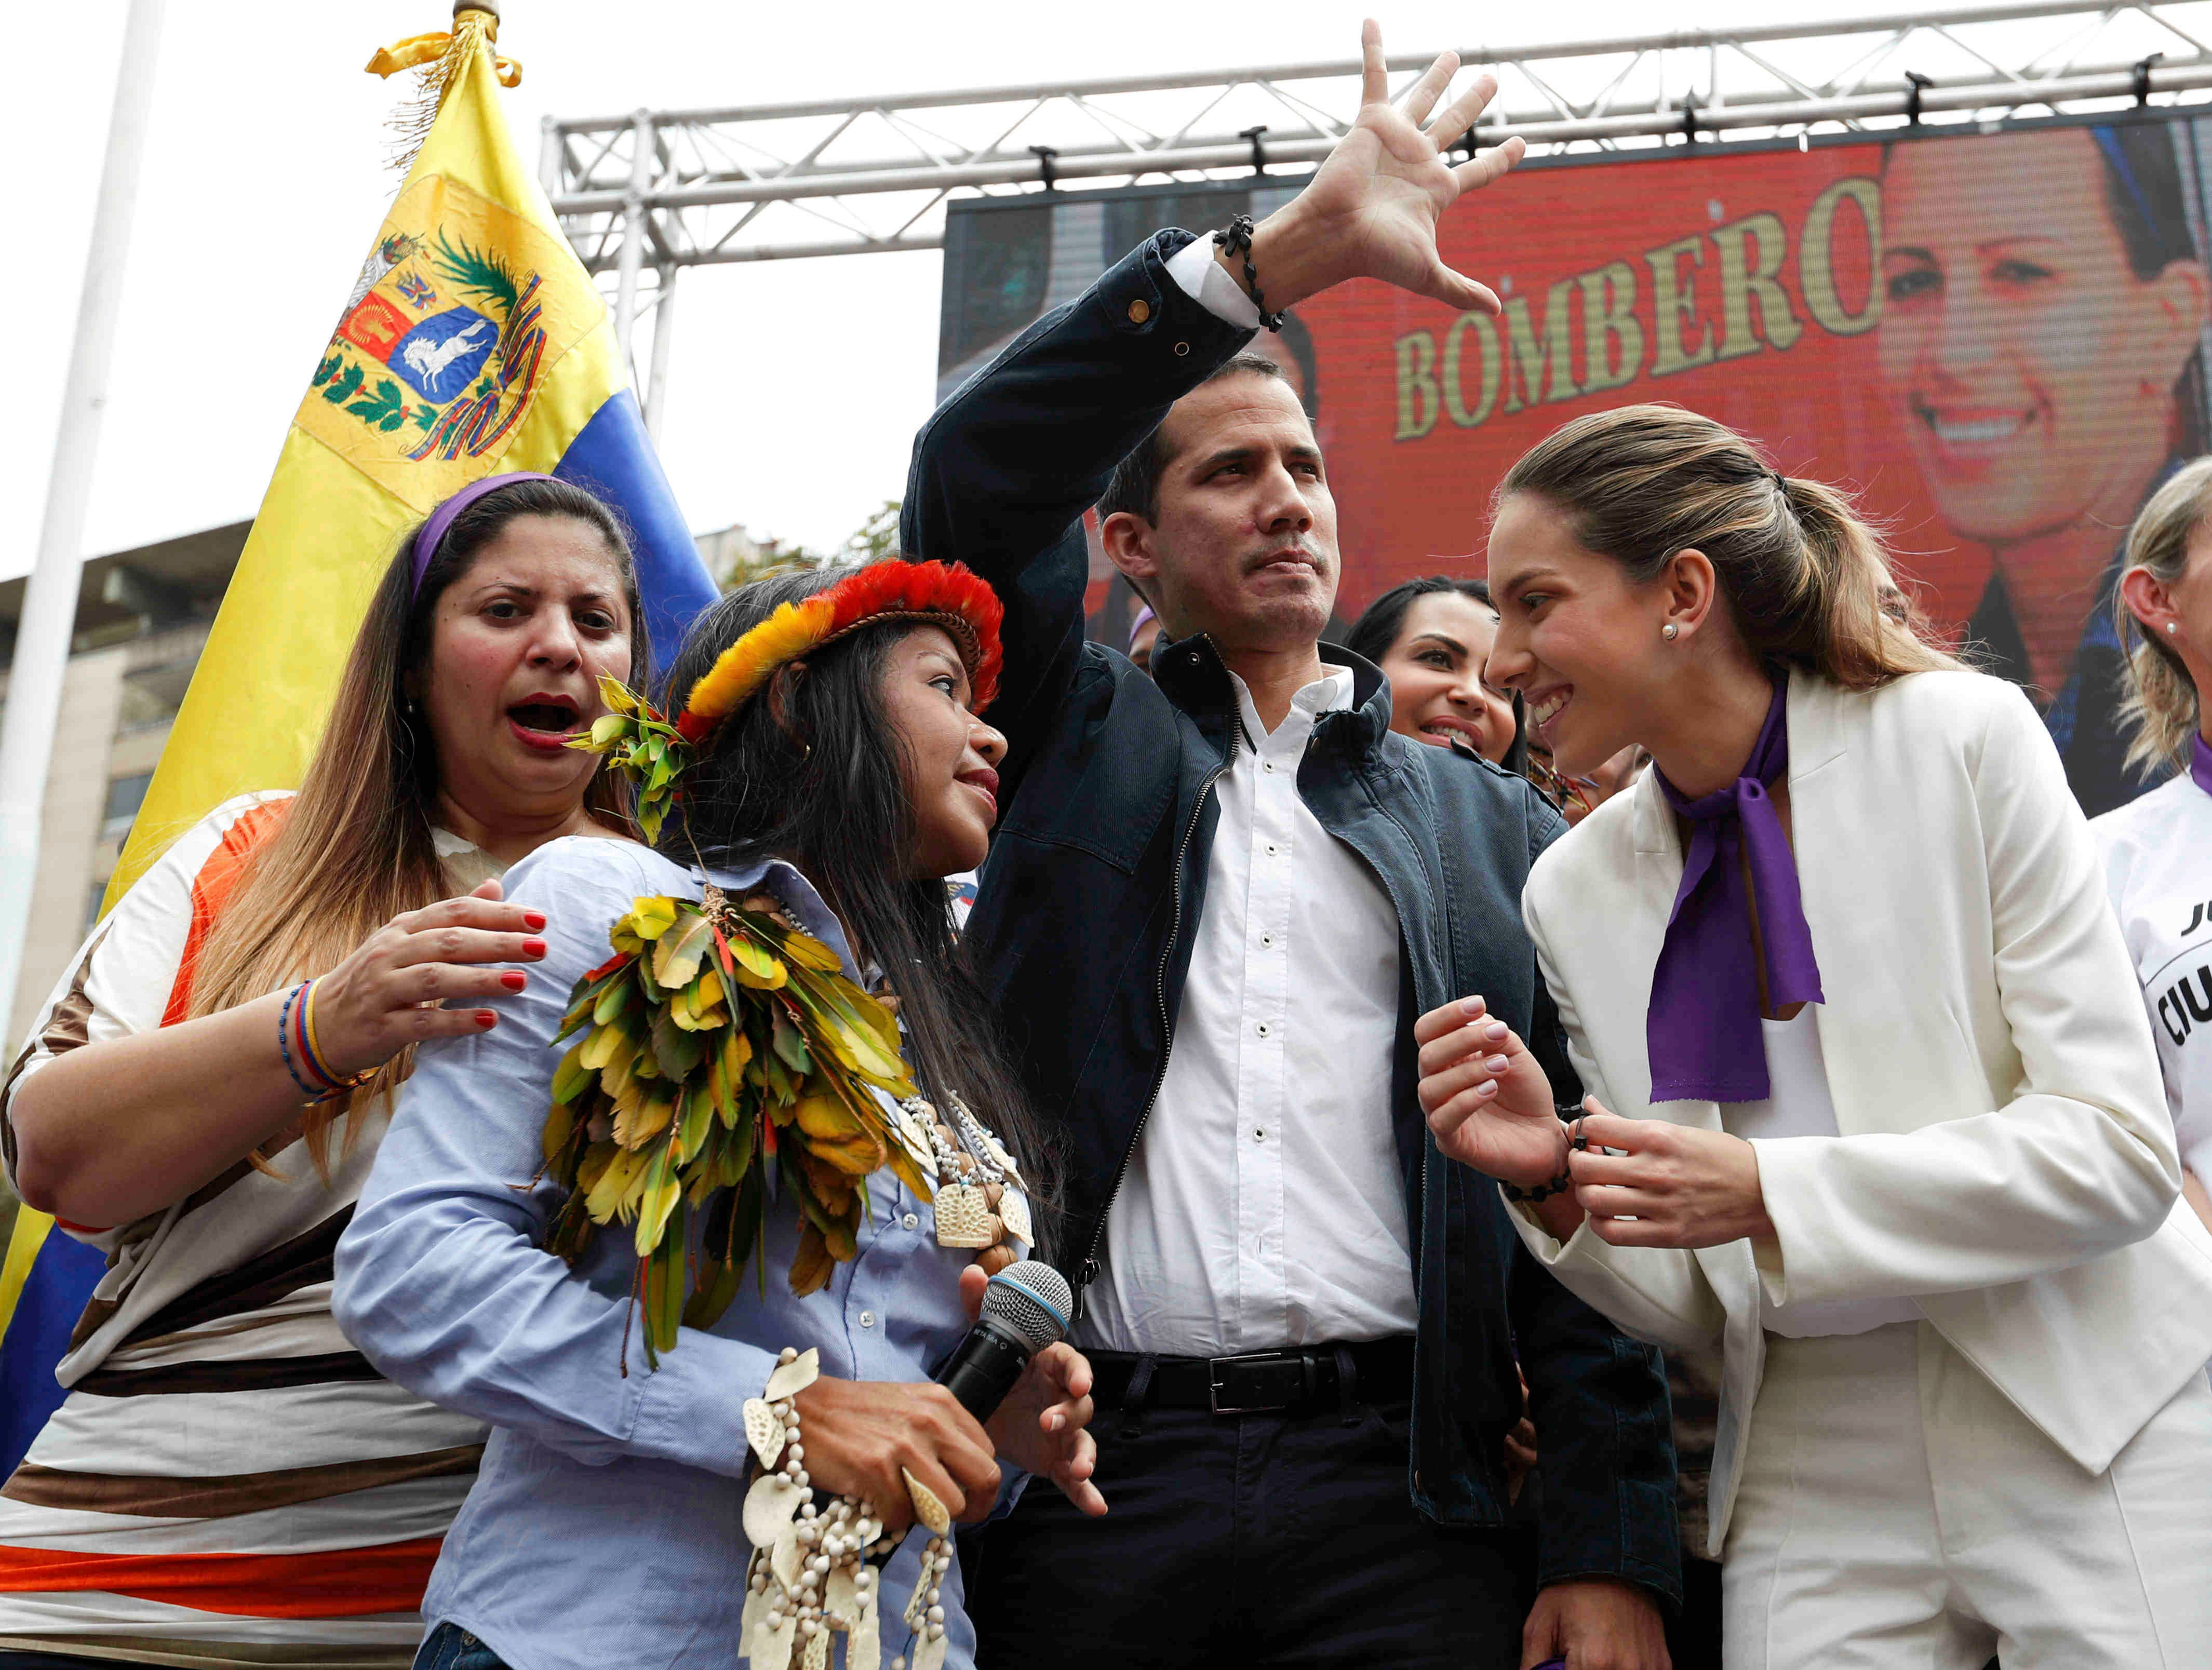 Accompanied by his wife Fabiana Rosales, right, Venezuelan opposition leader Juan Guaido, who has declared himself interim president, greets supporters as he arrives for a rally to commemorate International Women's Day in Caracas, Venezuela, Friday, March 8, 2019. (AP Photo/Eduardo Verdugo)